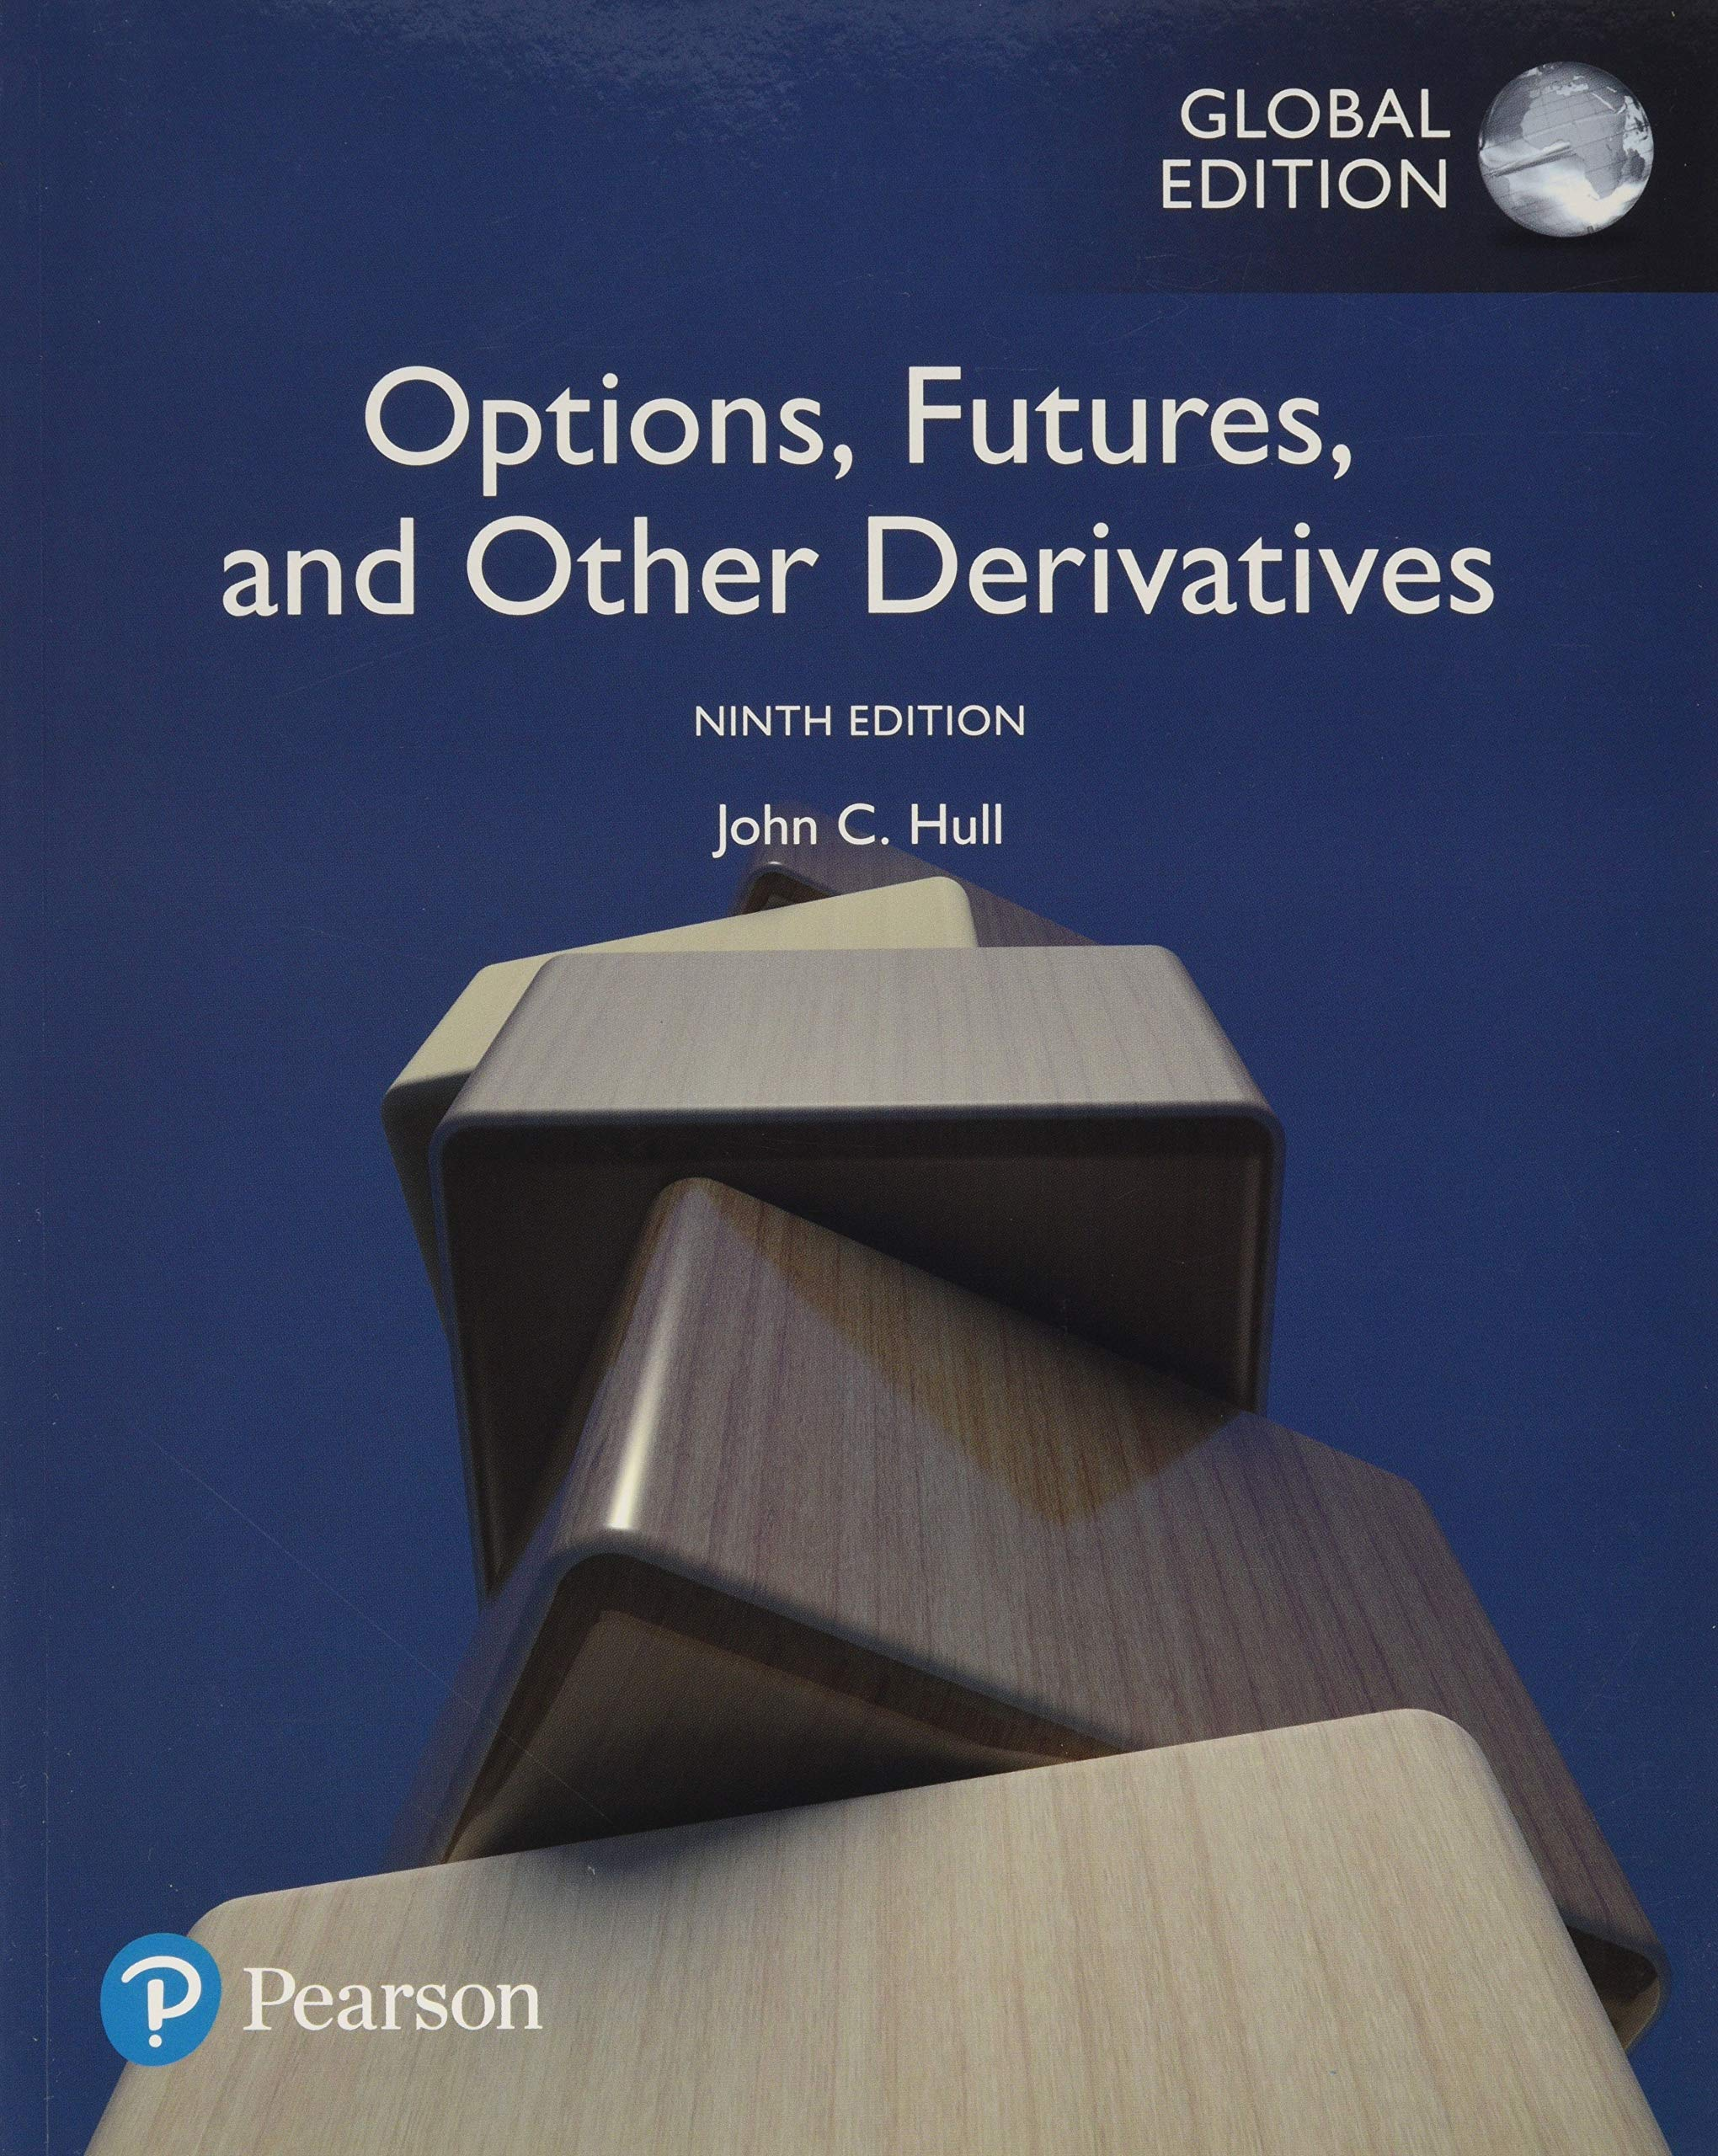 options futures and other derivatives 10th edition hull solutions manual handel in forex